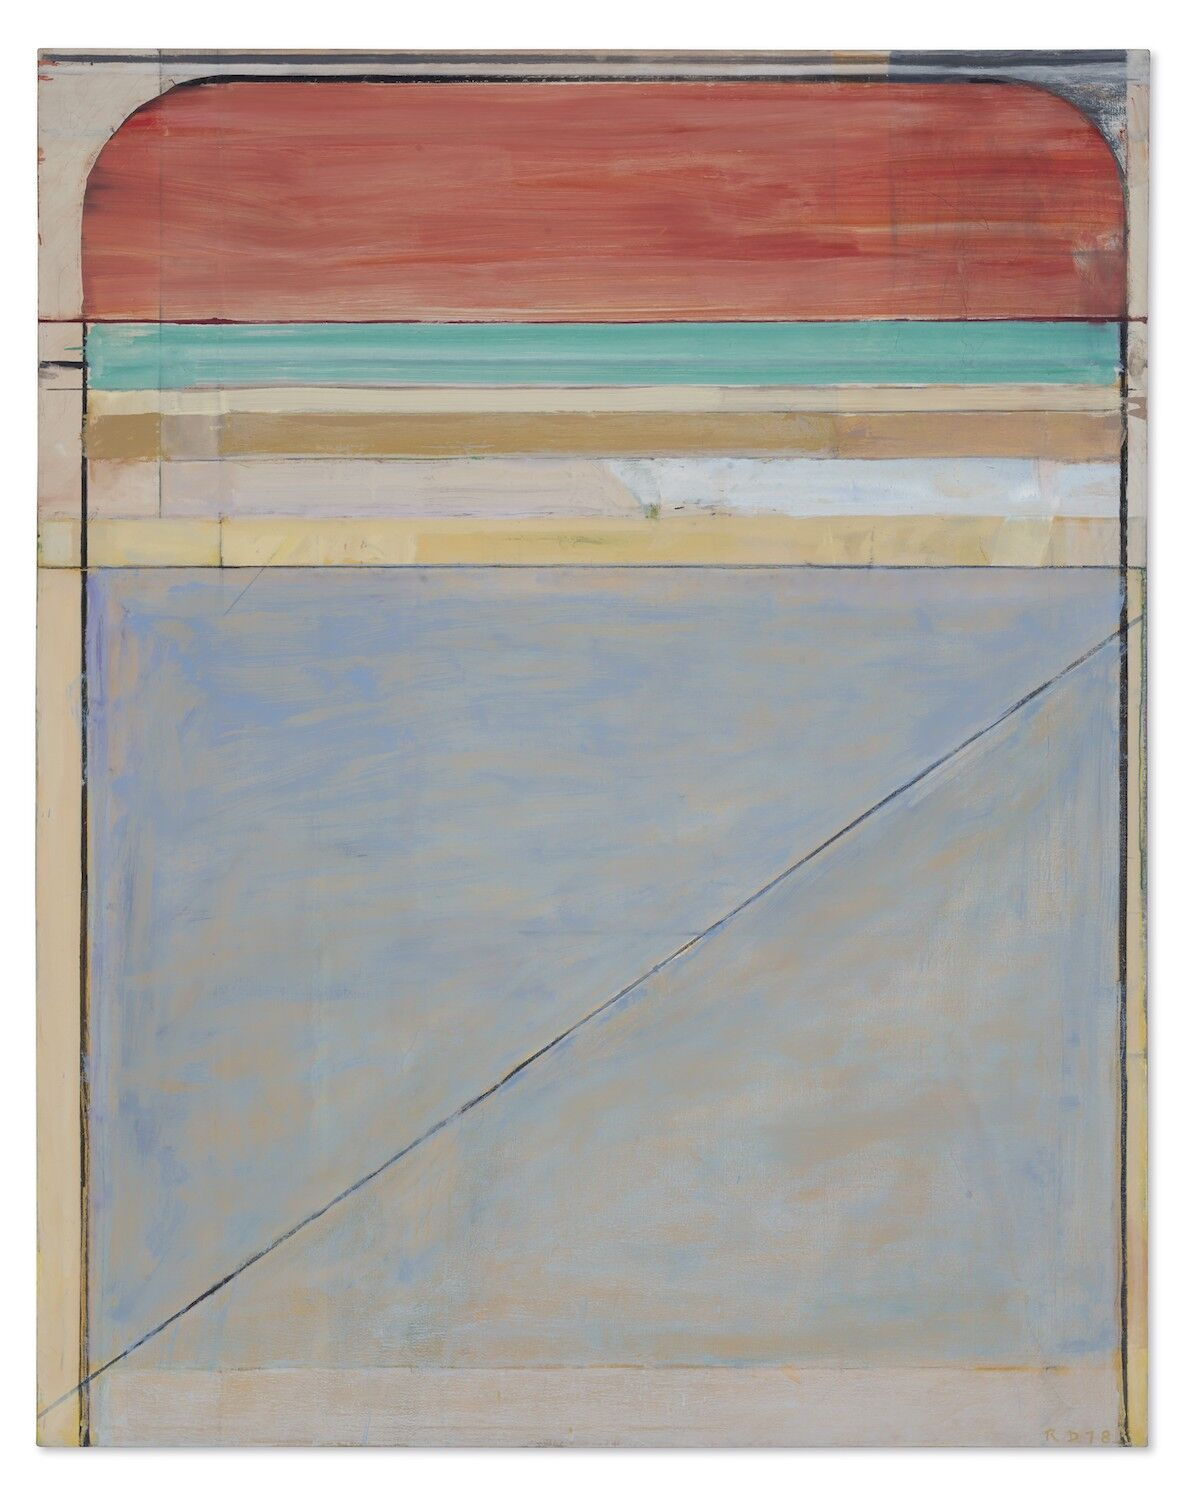 Richard Diebenkorn, Ocean Park #108, 1978. Est. $7 million–$9 million. Courtesy Christie's.